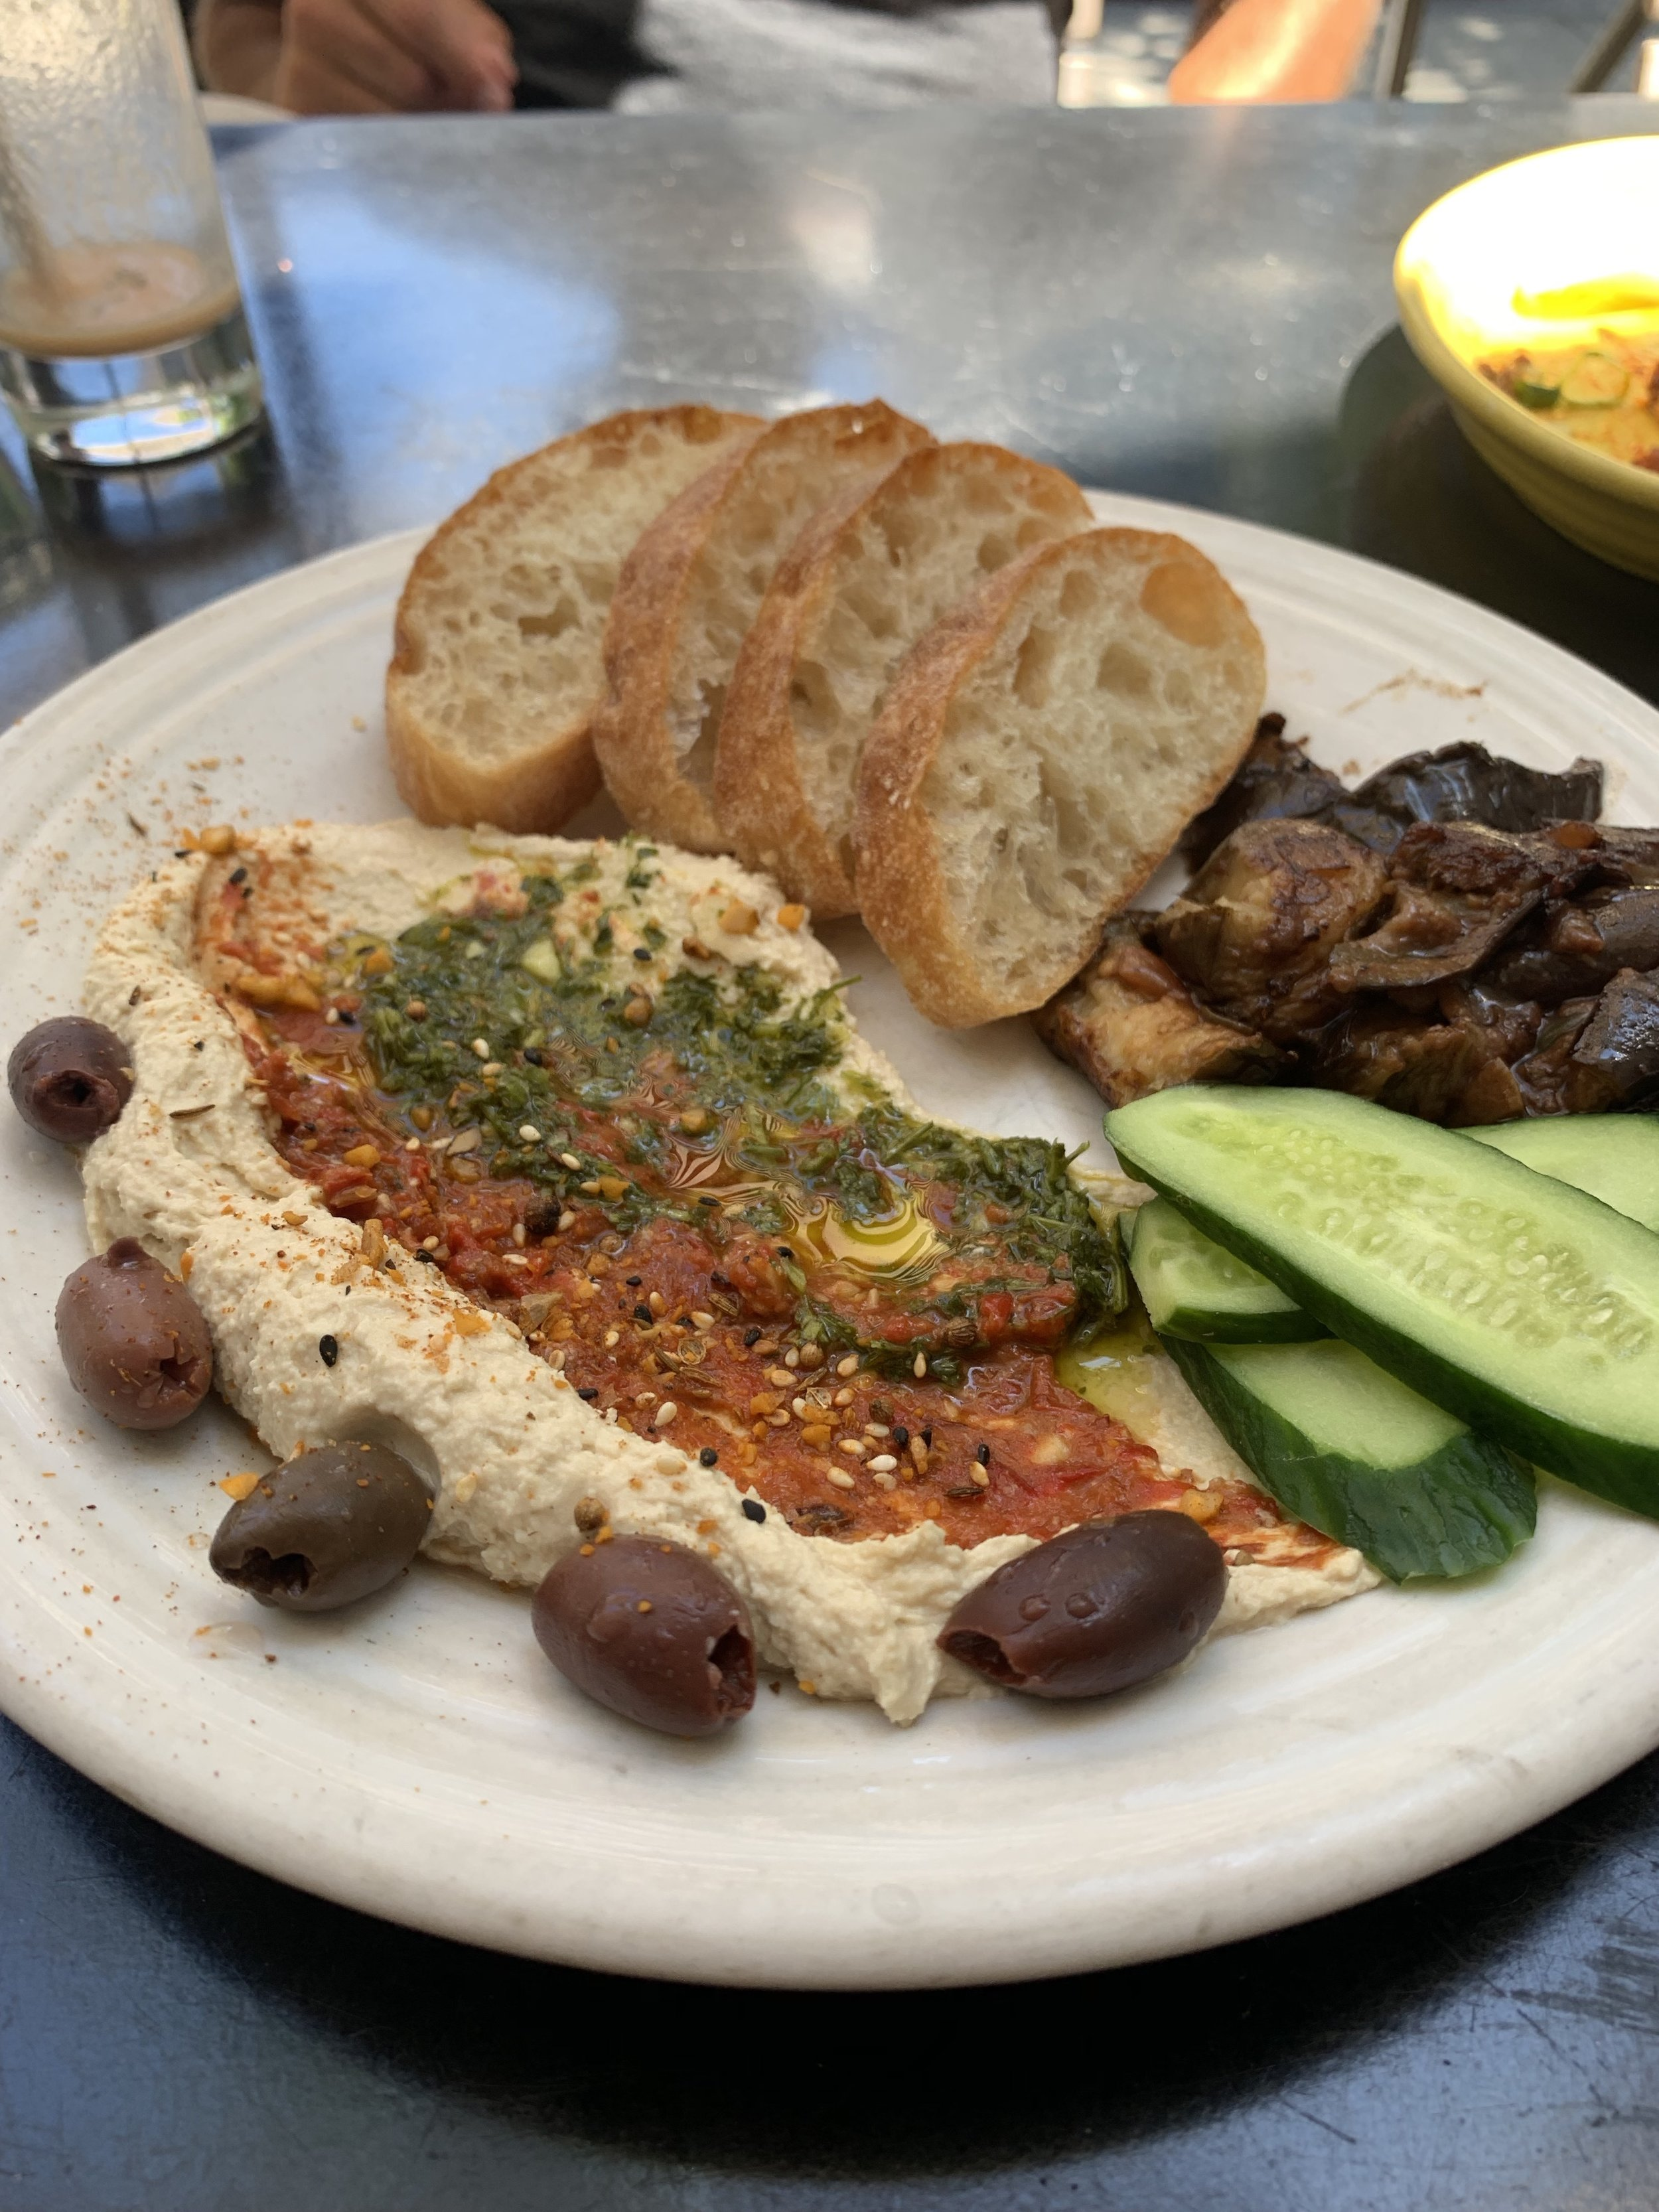 KARMIC chickpea hummus plate could be a meal: red pepper walnut muhummara, cilantro zhoug, dukkah, sumac, olives, veggies for dipping and ciabatta